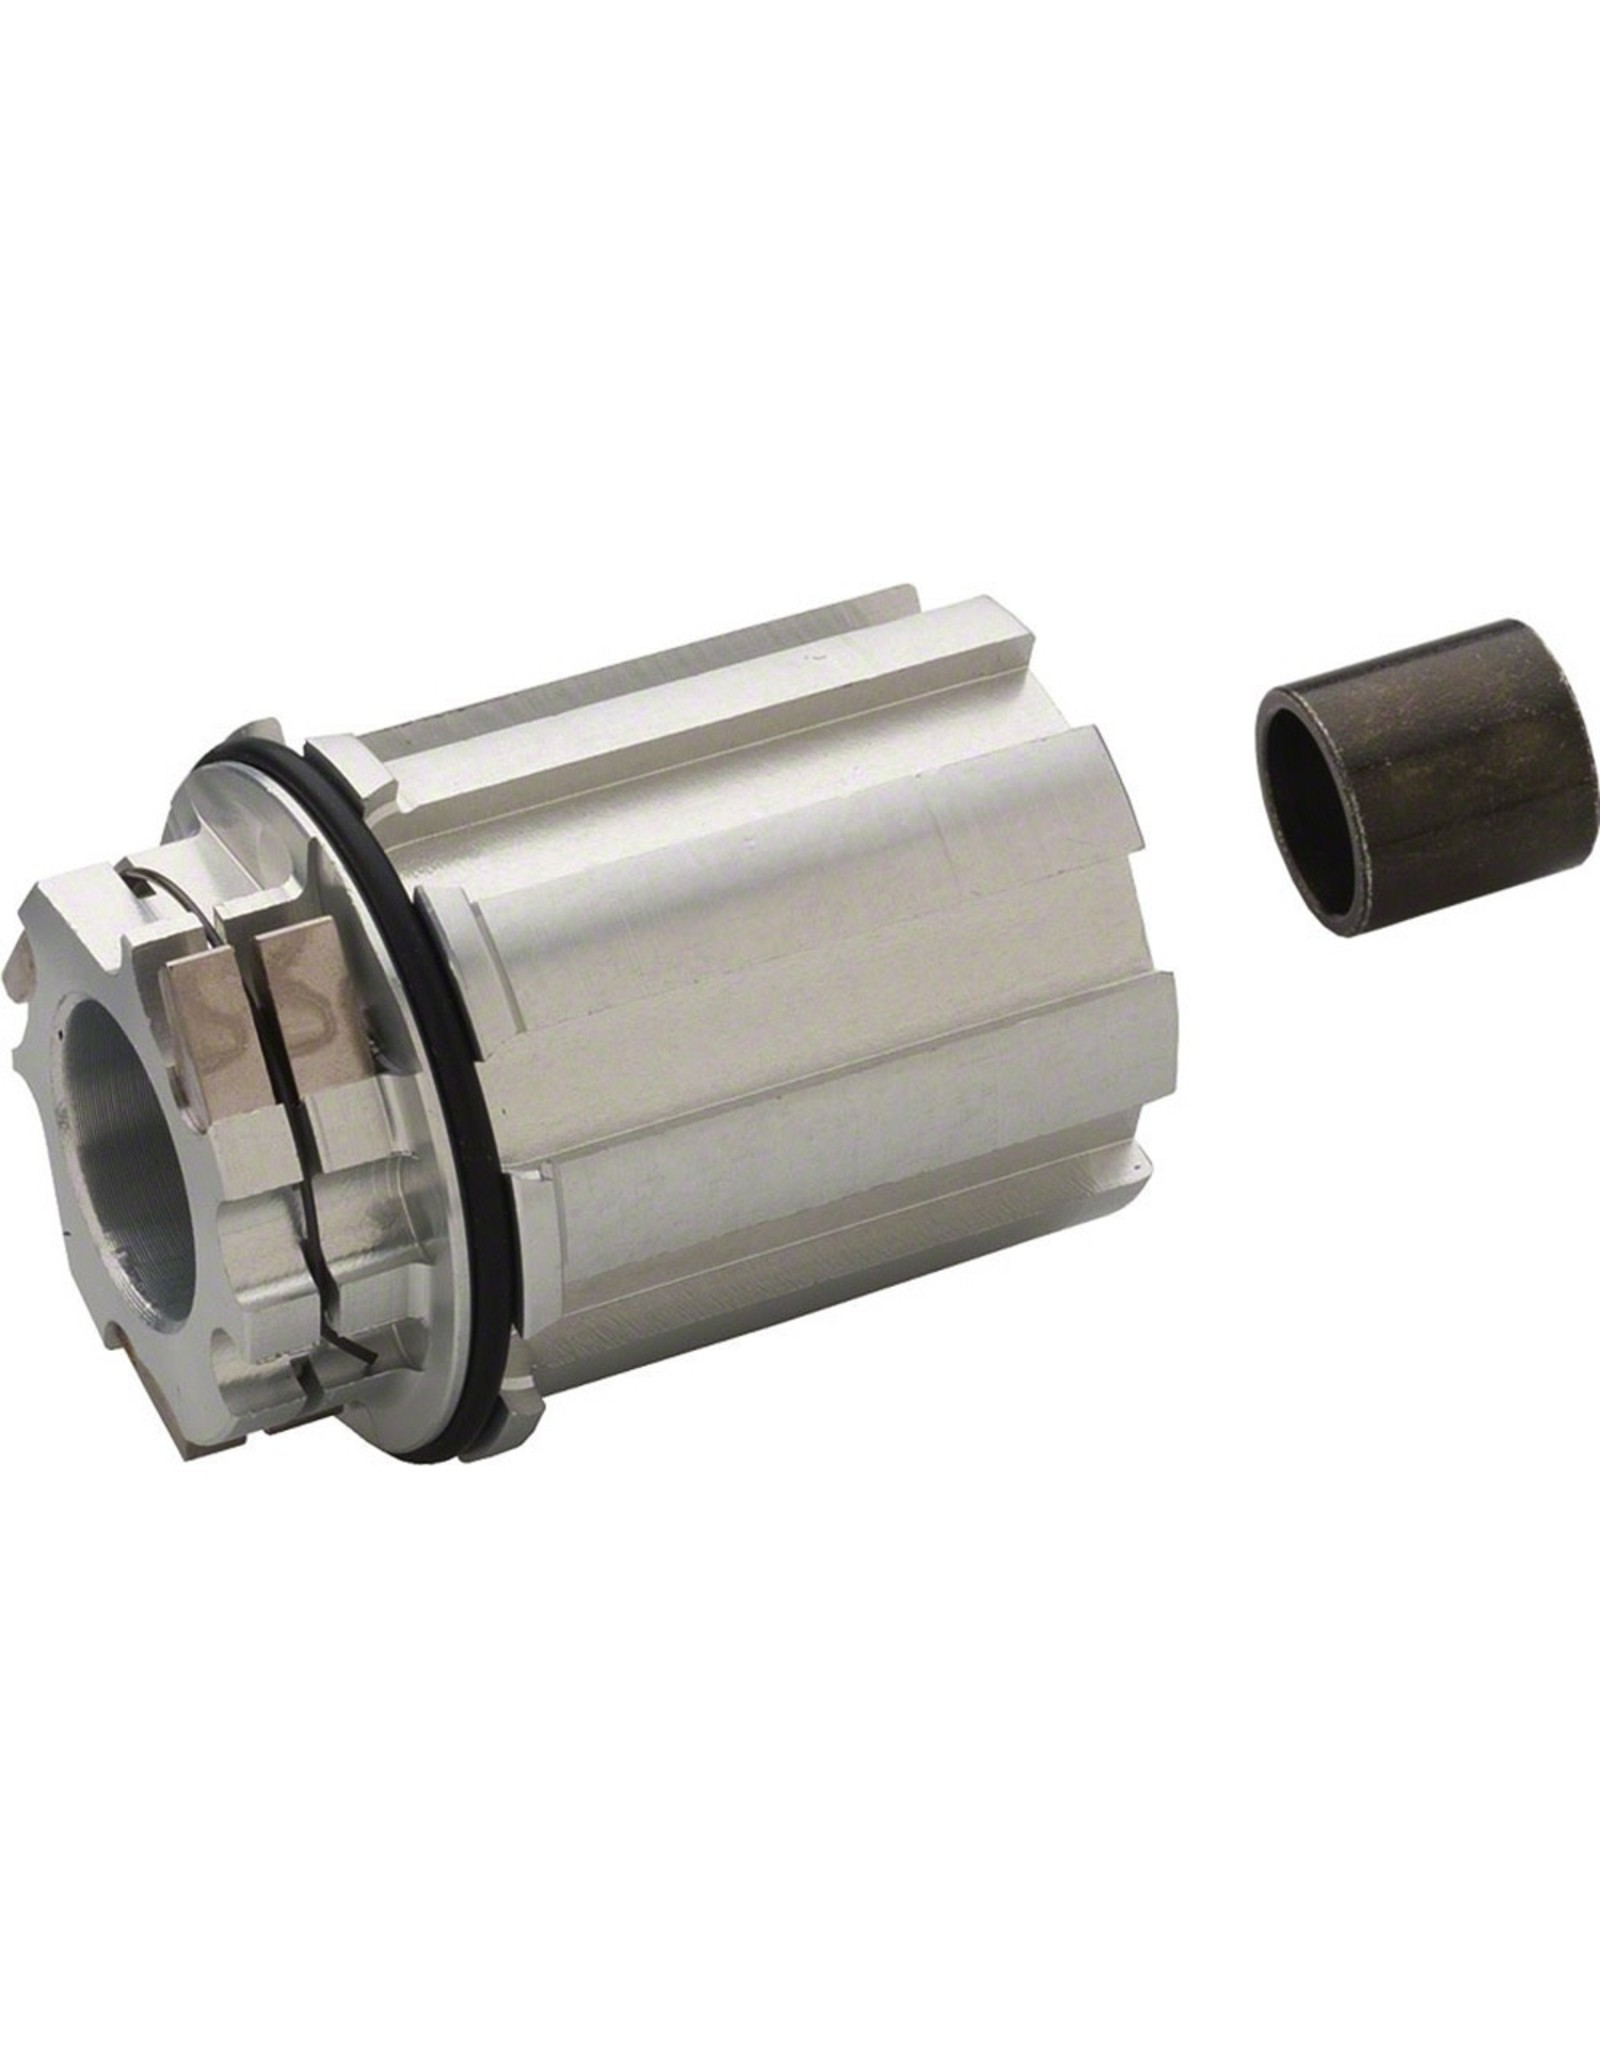 Miche Freehub Body Primato/Racing Box Campagnolo